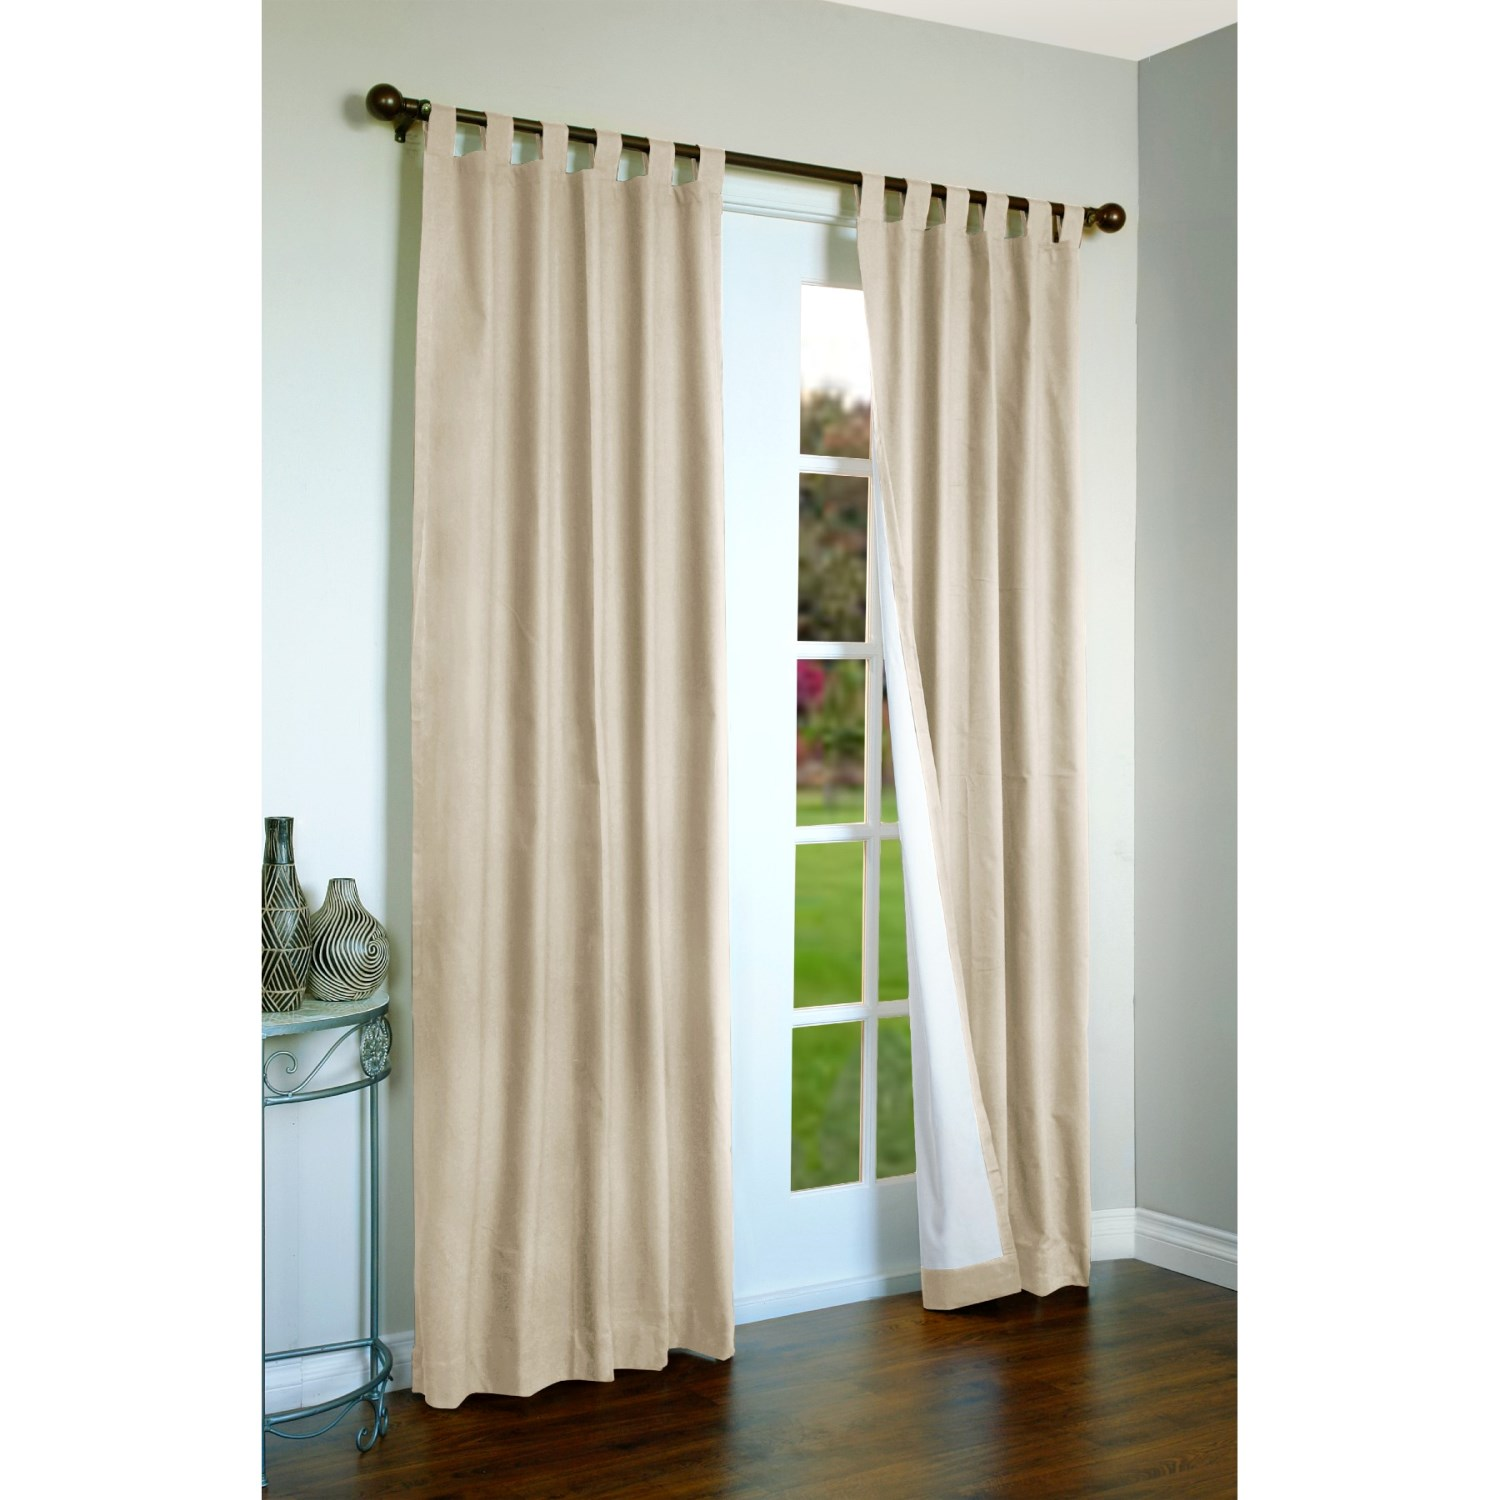 Patio door curtain ideas 2017 2018 best cars reviews for Sliding glass doors curtains